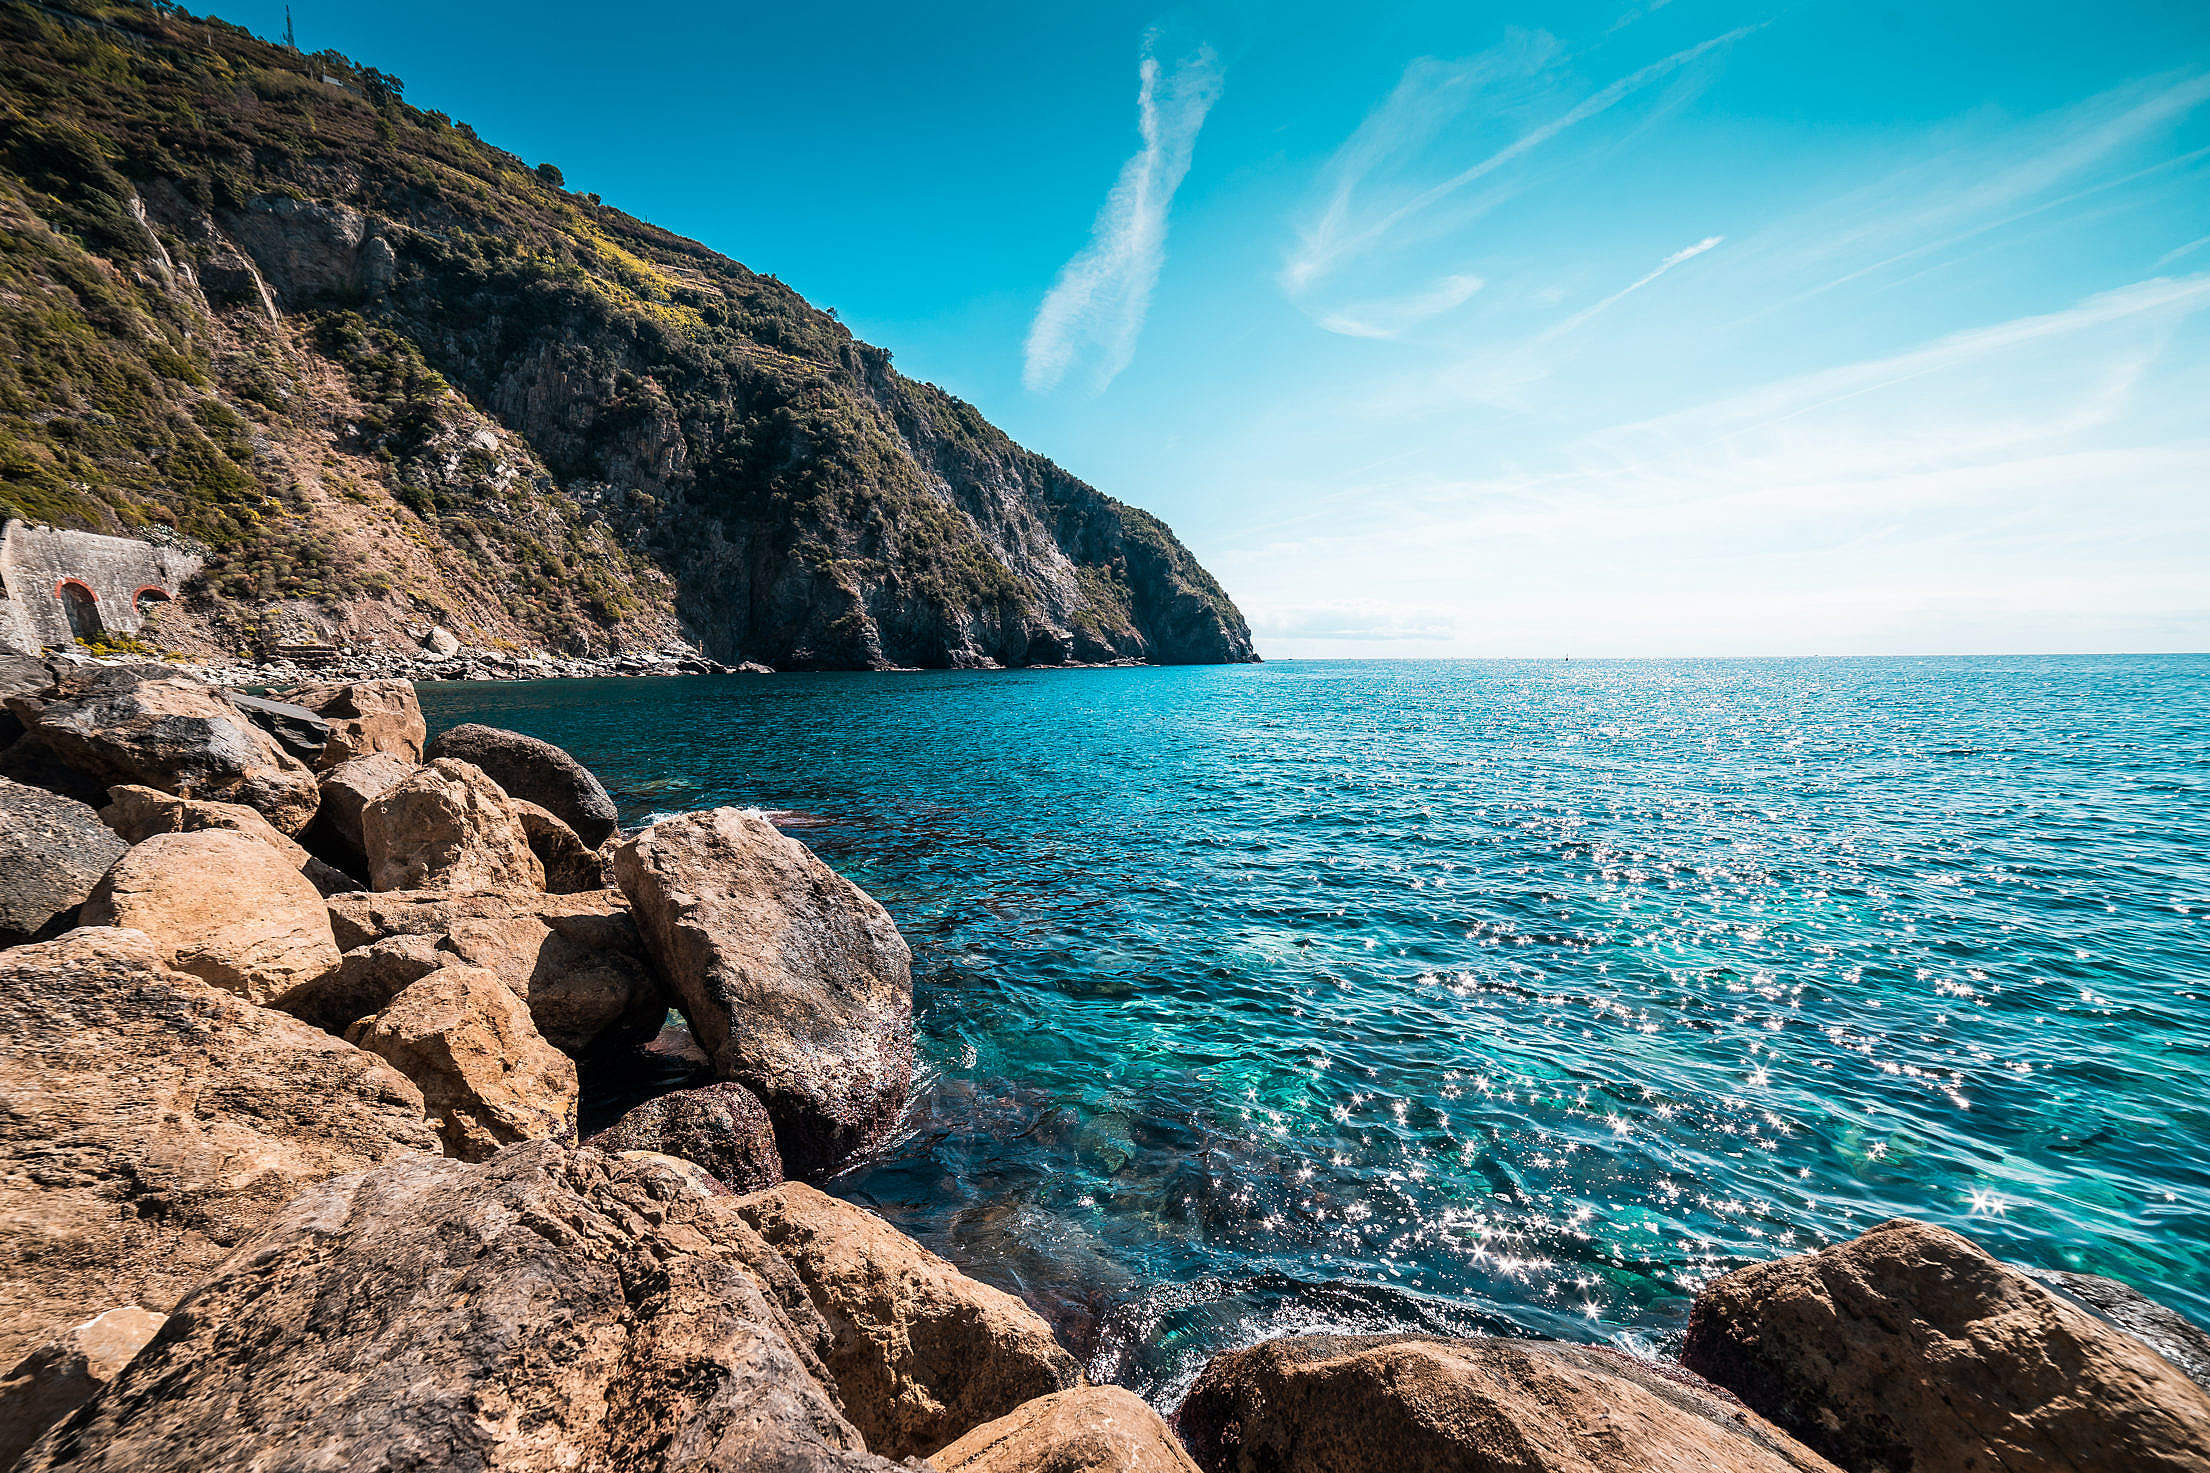 Sea Coastline Italy Free Stock Photo